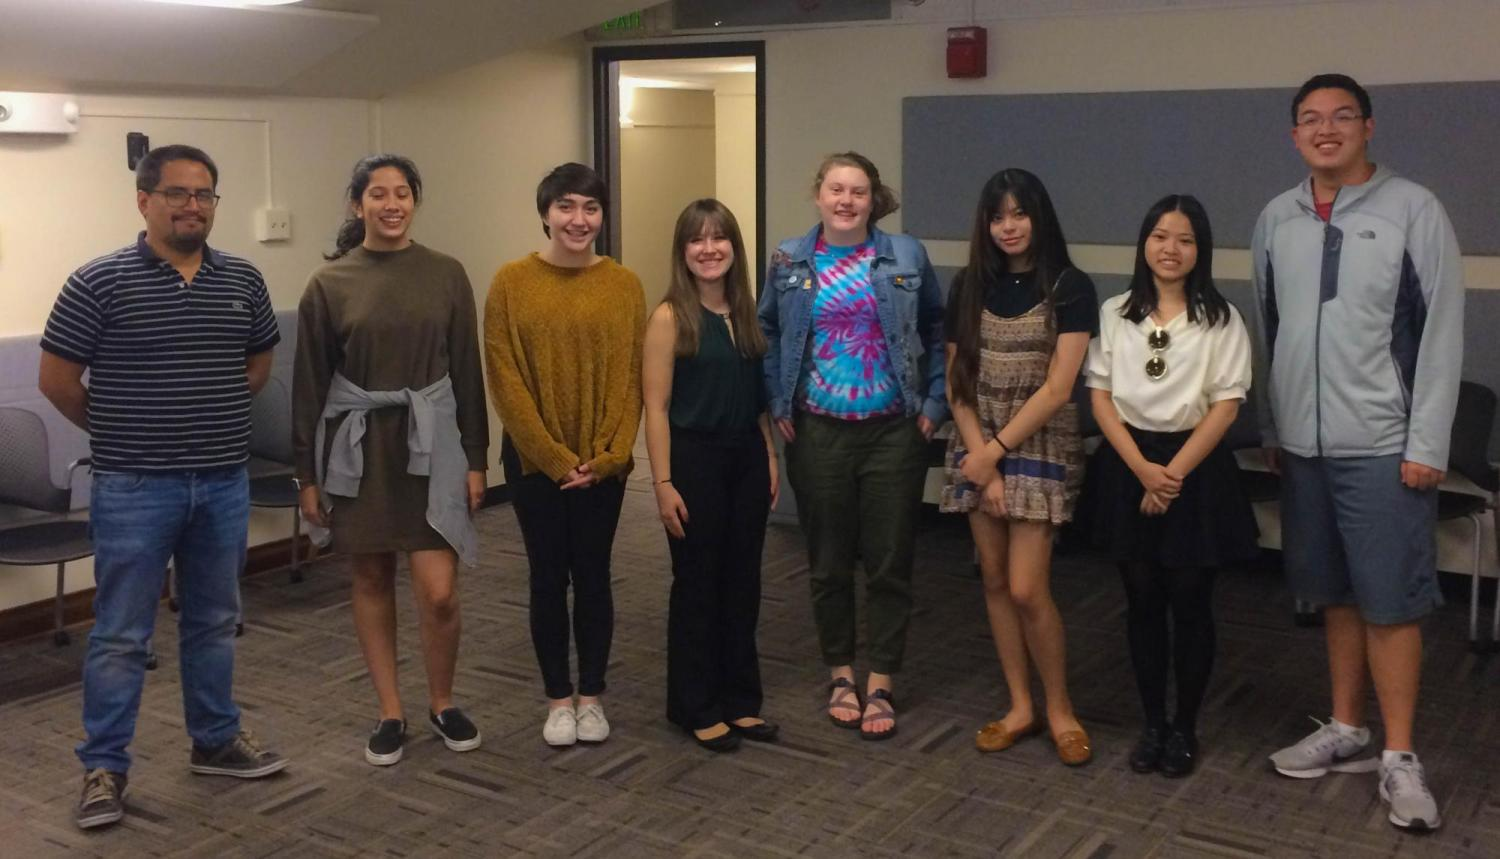 Our 2017 - 2018 Student Libraries Advisory Board